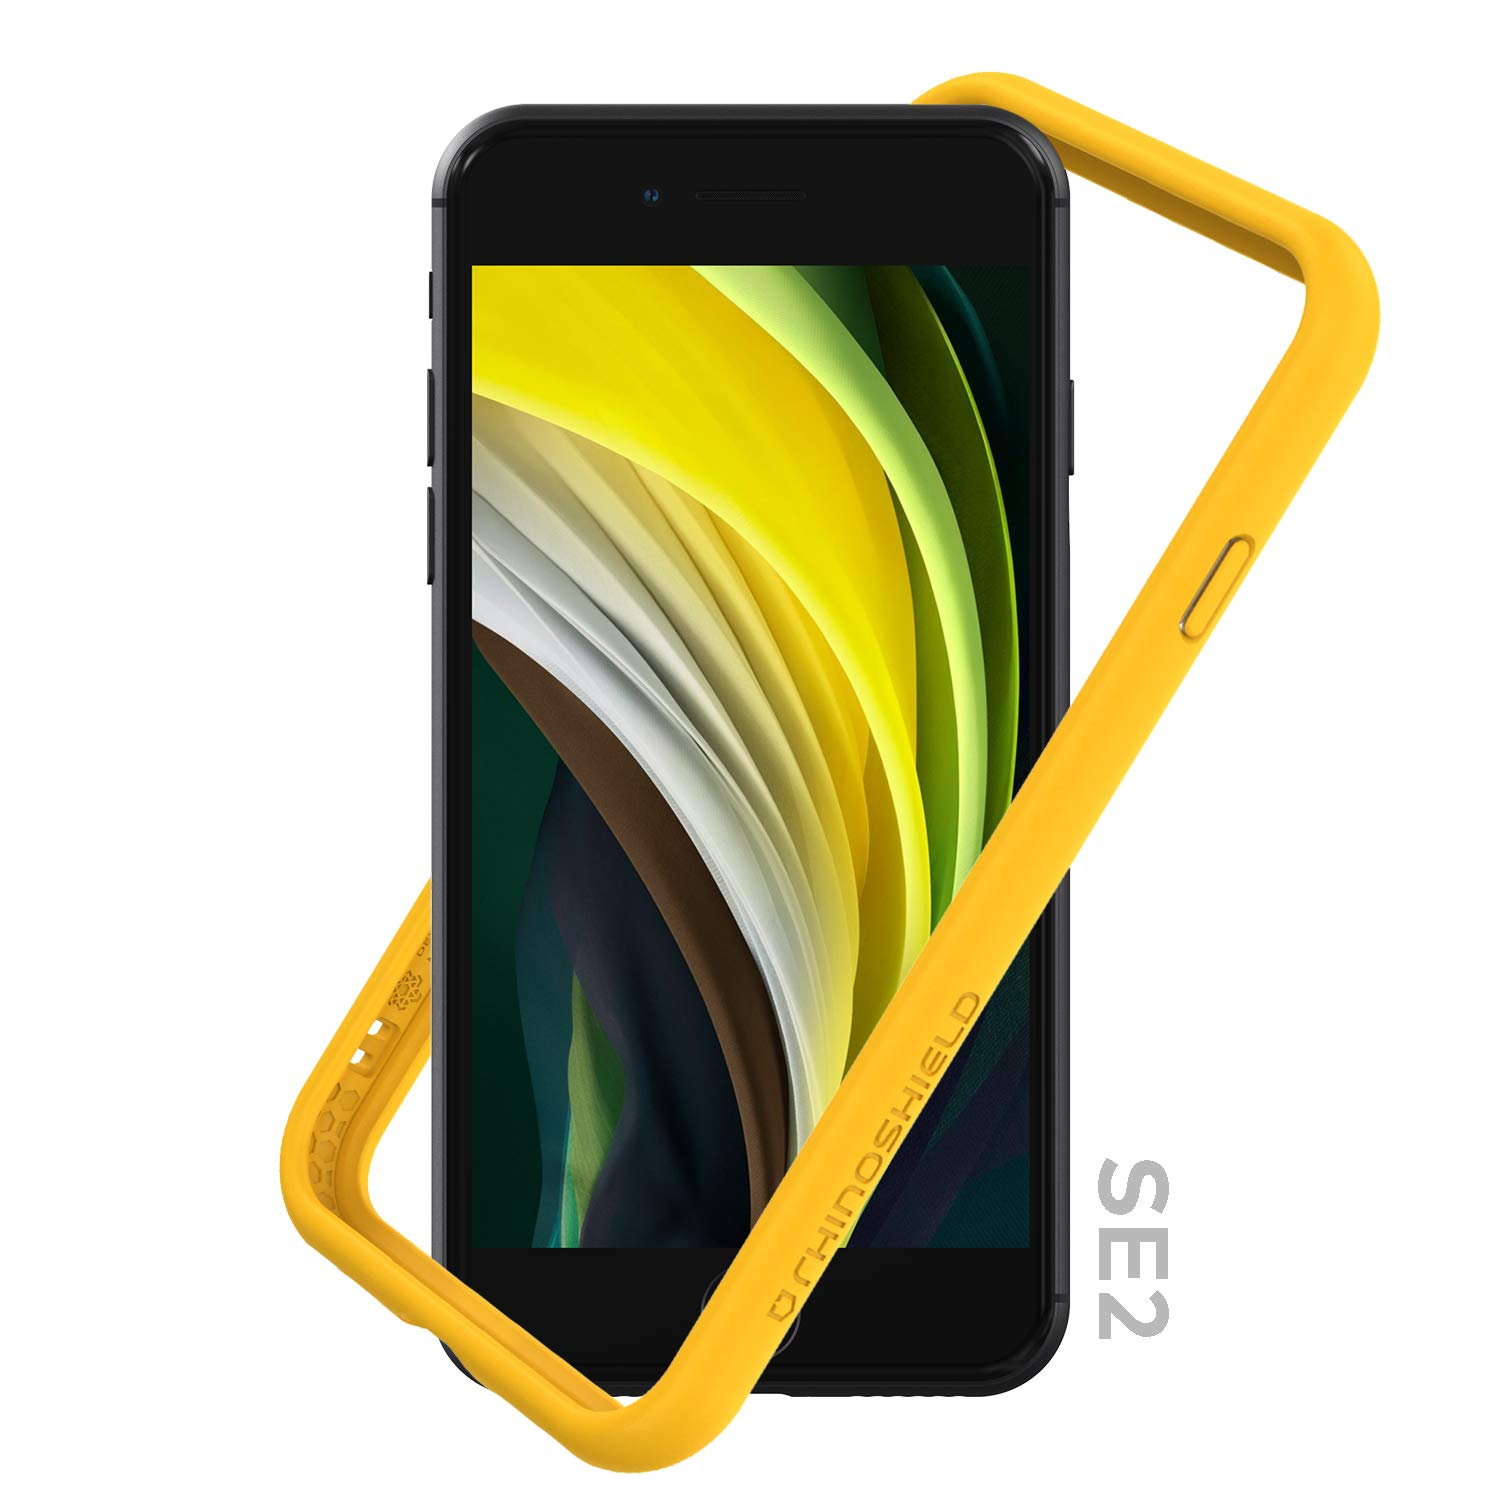 RhinoShield Bumper Compatible with [iPhone SE2 / SE (2020) / 8/7]   CrashGuard NX - Shock Absorbent Slim Design Protective Cover [3.5M / 11ft Drop Protection] - Yellow